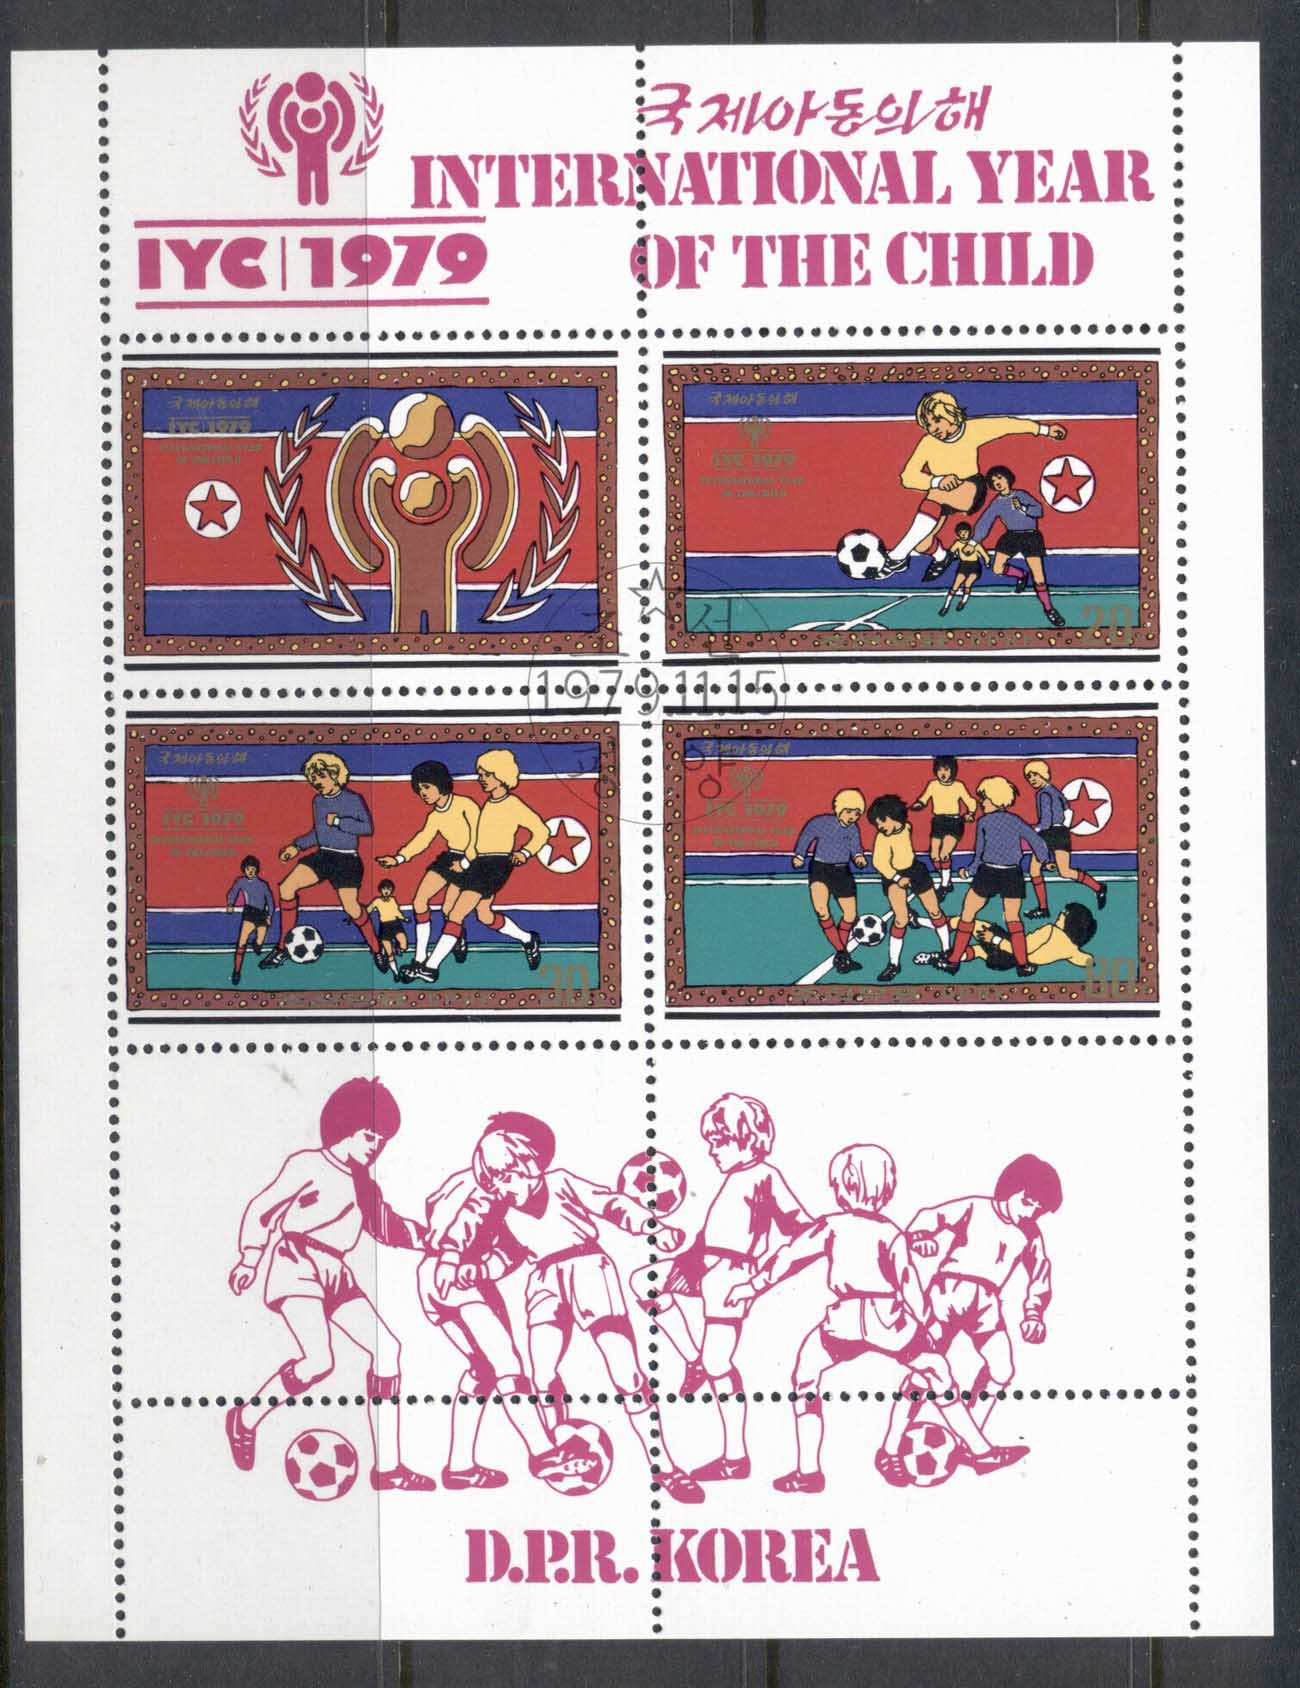 South East Asia 1979 IYC International Year of the Child sheetlet CTO